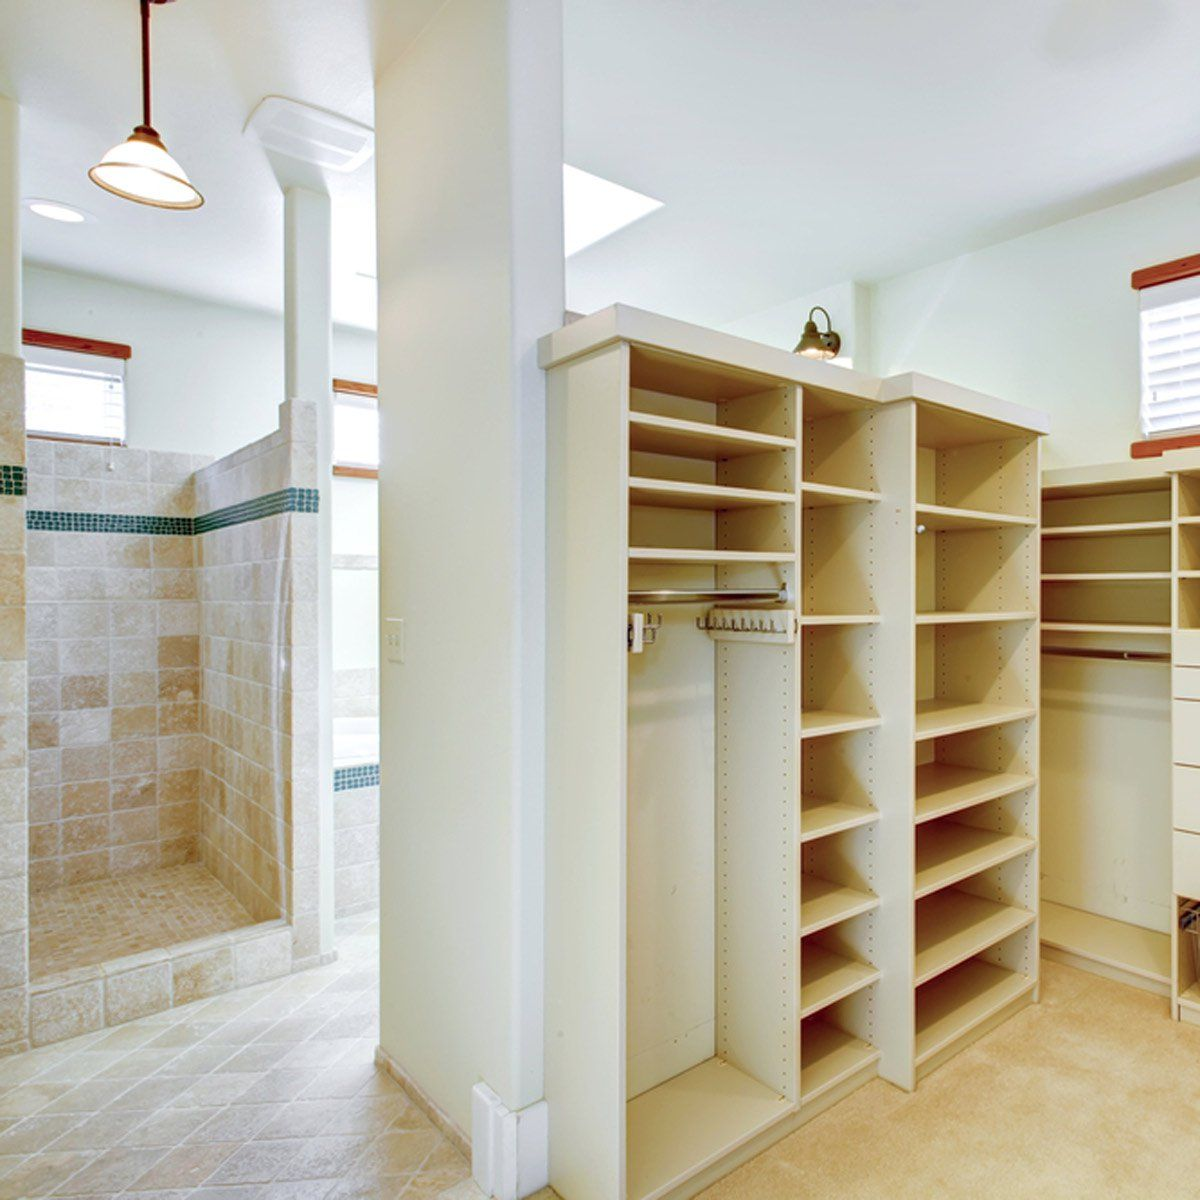 12 Walk-In Closets to Die For | Custom closet shelving ...